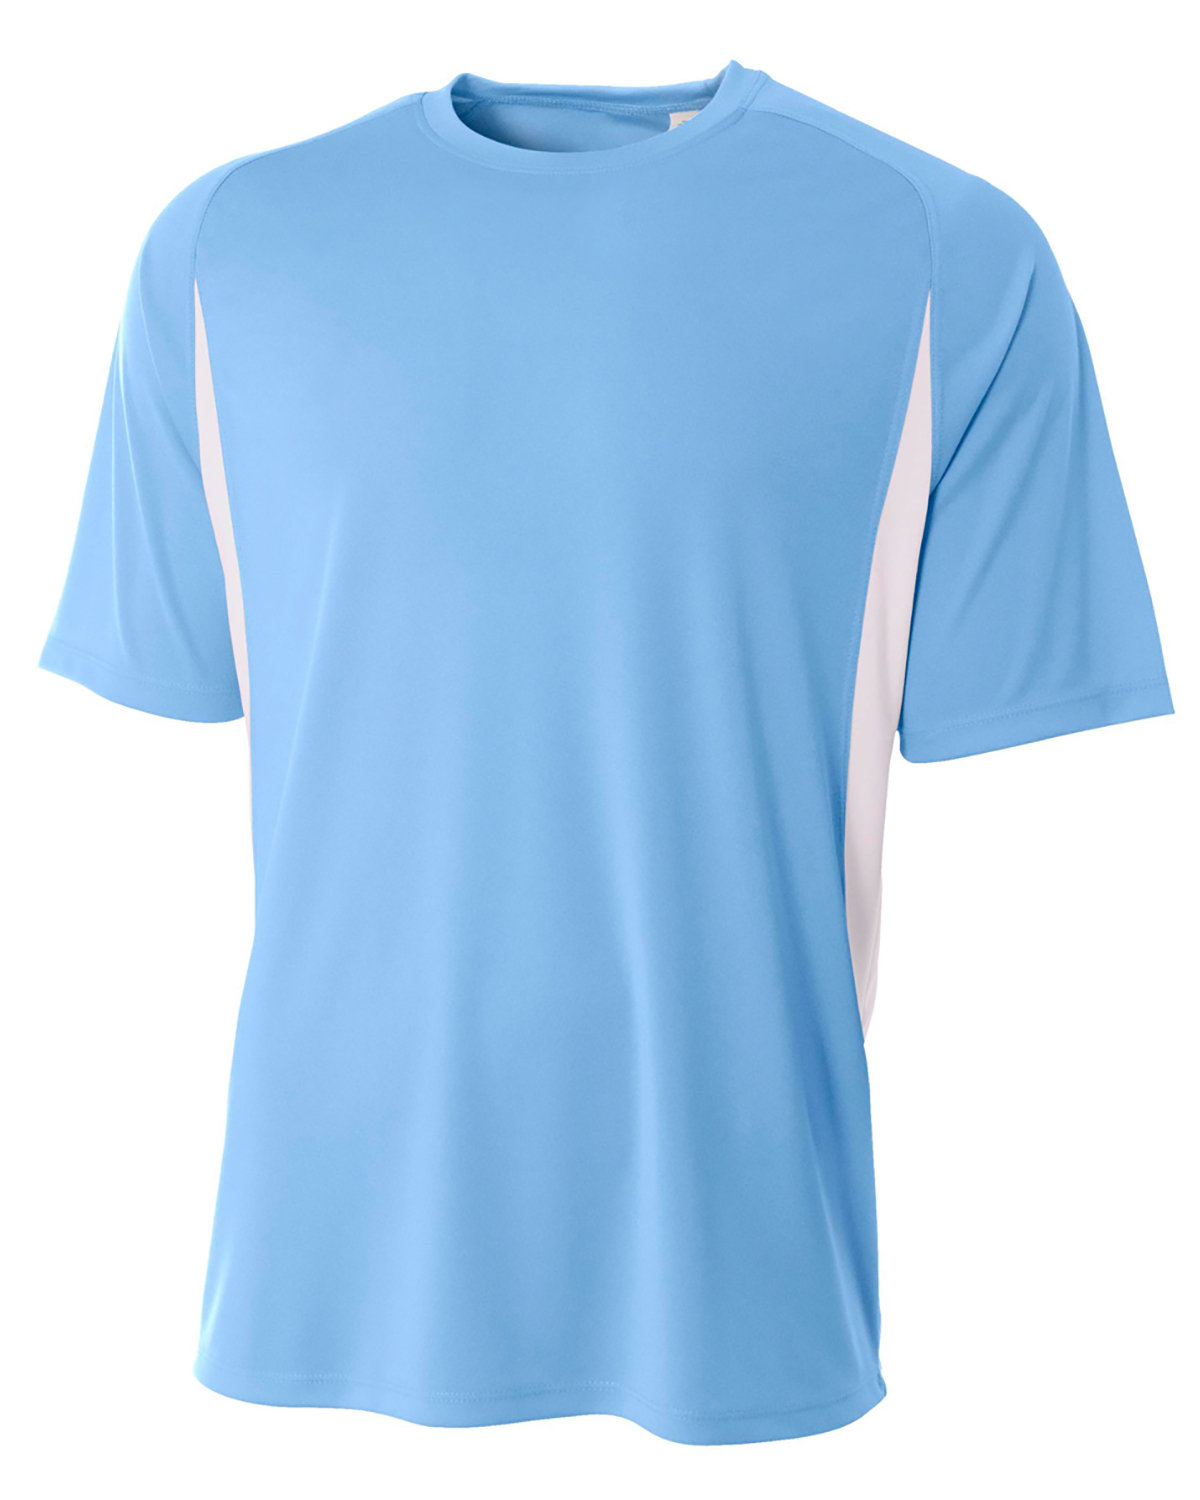 A4 Youth Cooling Performance Color Blocked T-Shirt LIGHT BLUE/ WHT